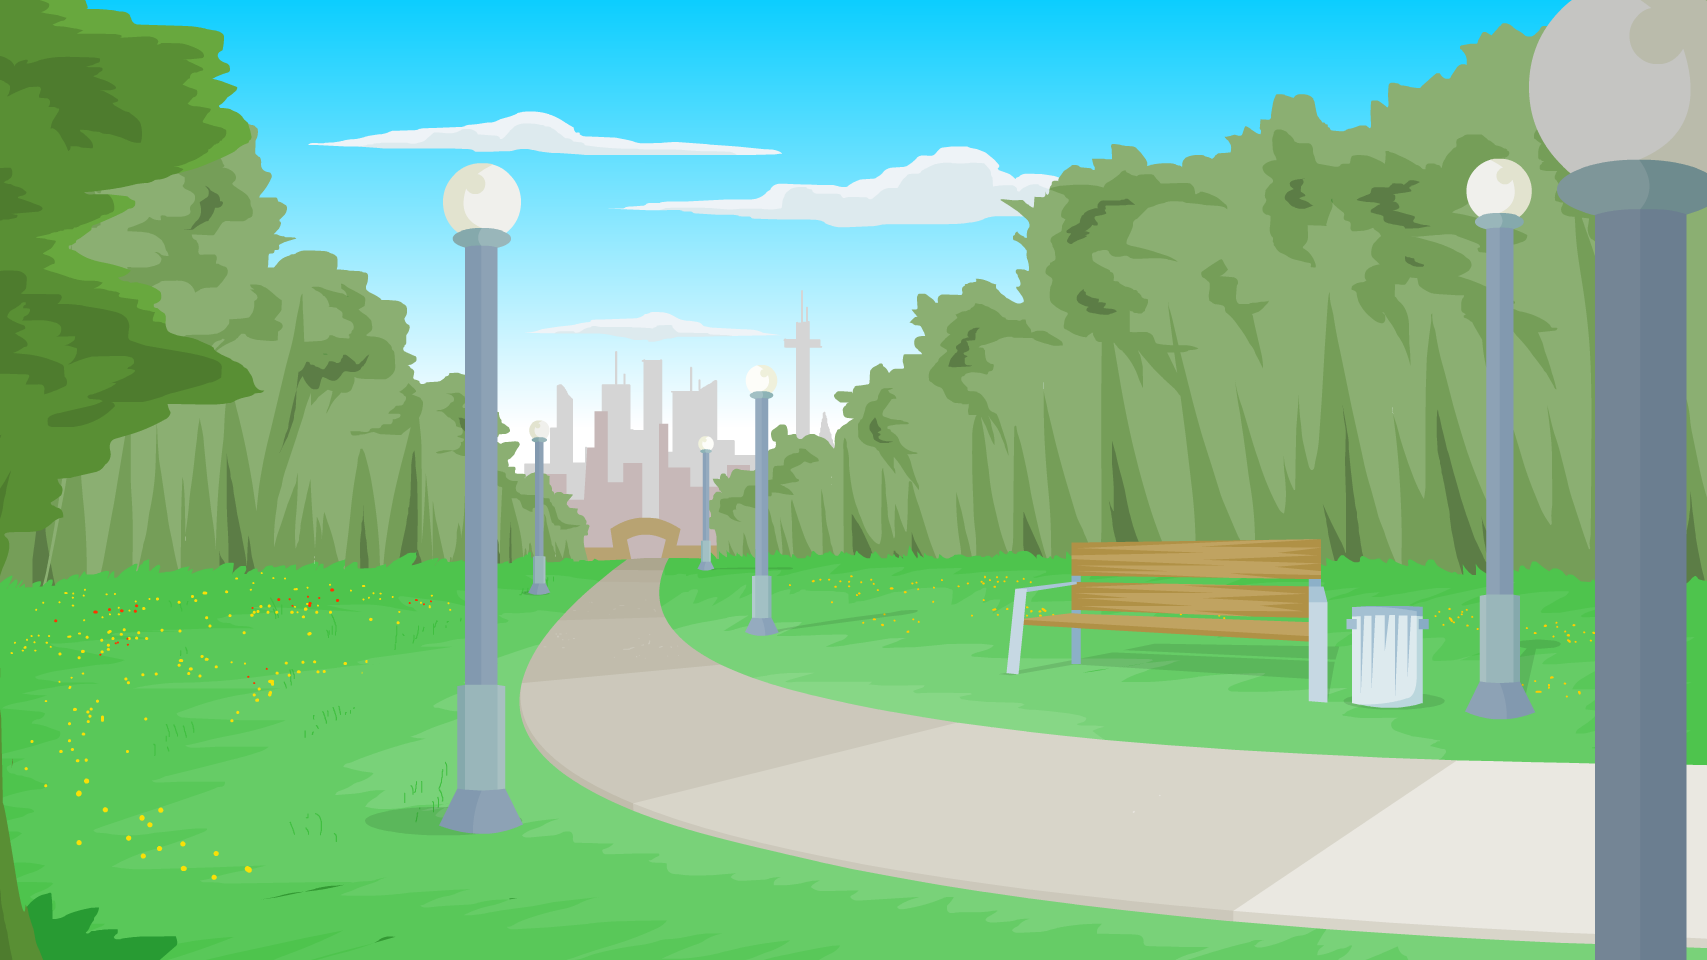 Clipart park background clipart black and white download Park Background by GordyH on Newgrounds clipart black and white download